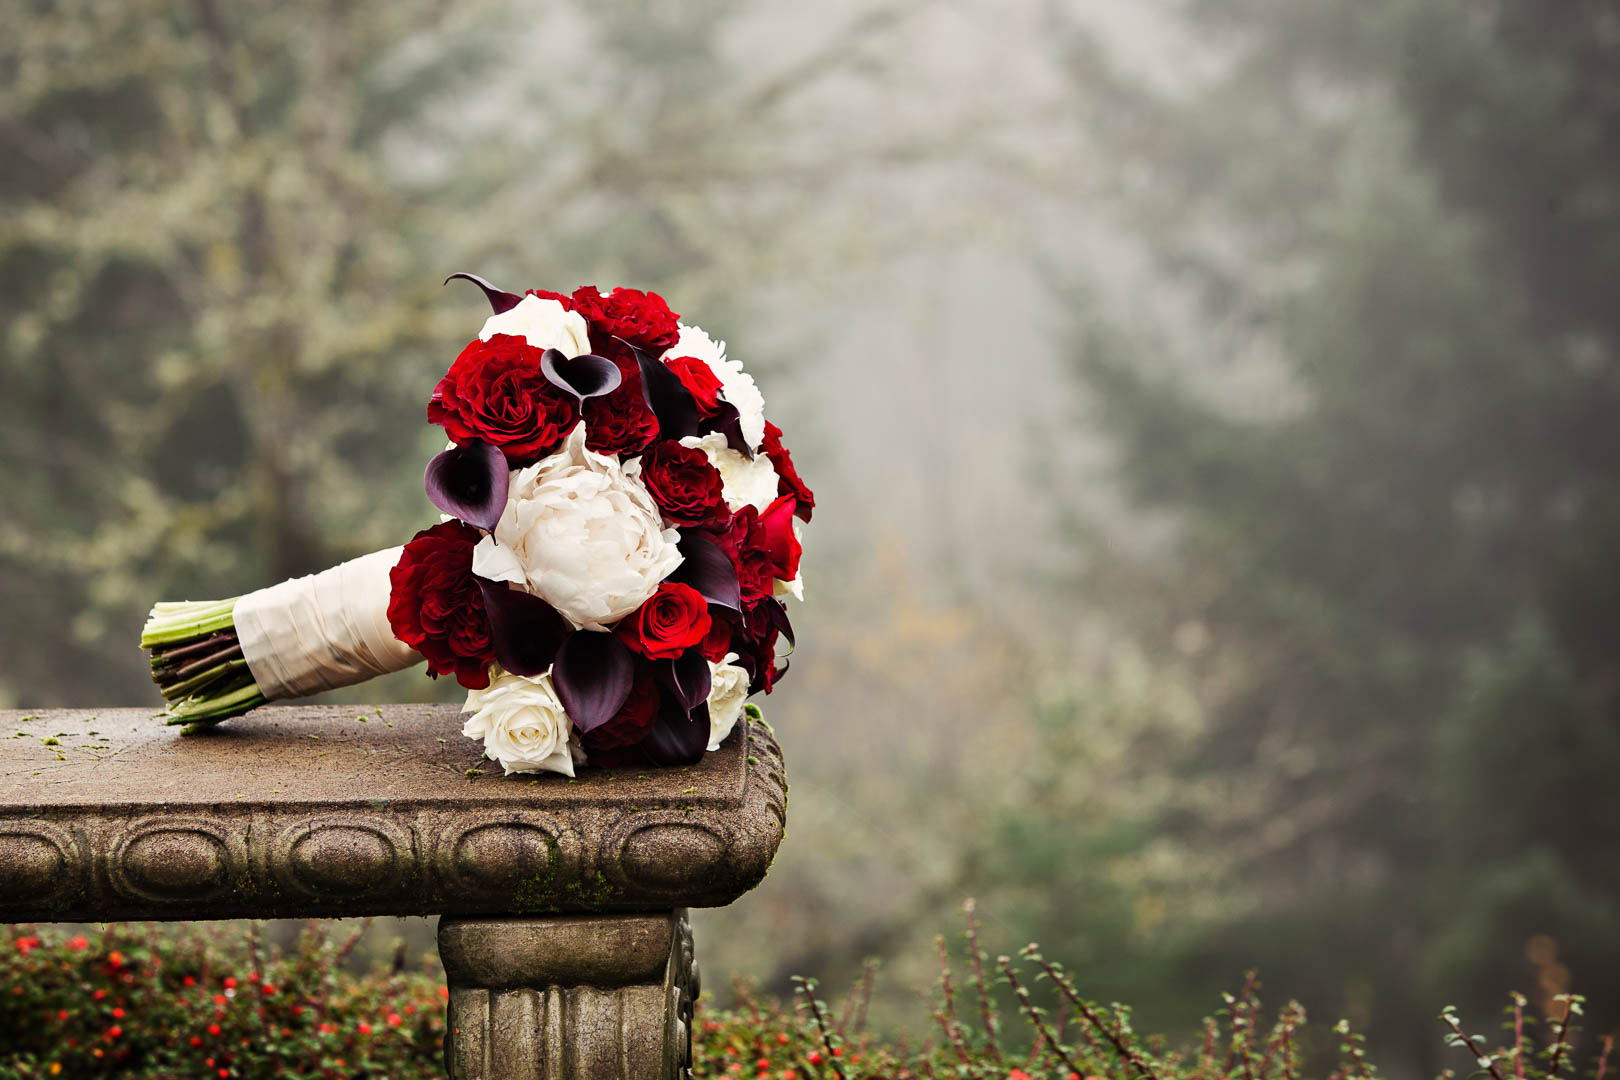 The Bridal Bouquet in the morning fog